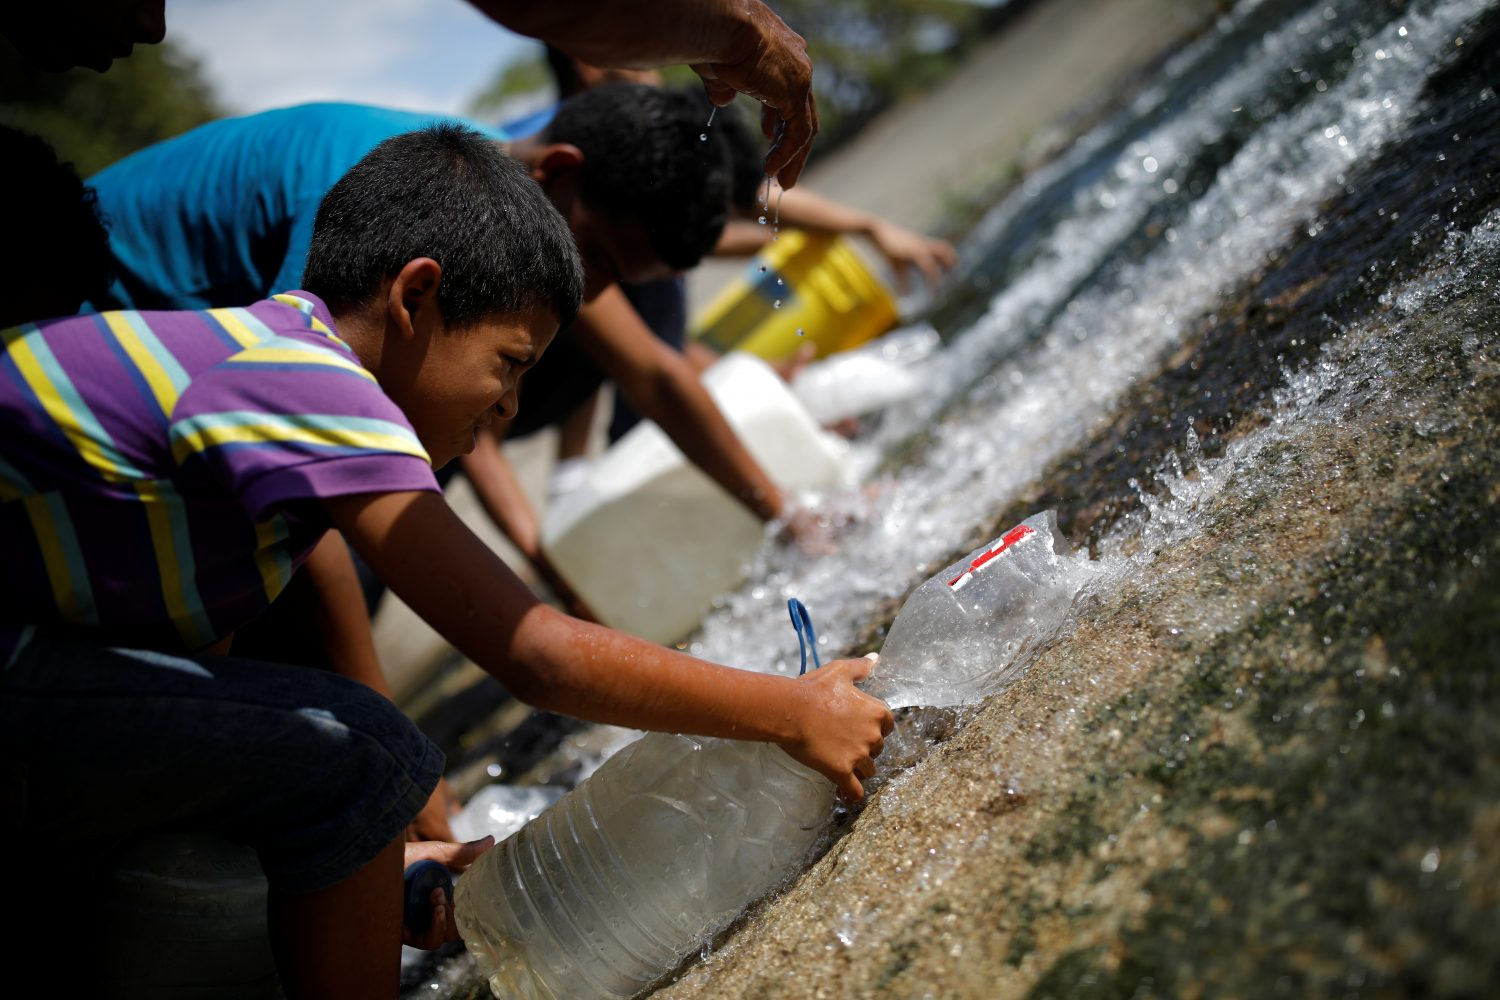 People collect water released through a sewage drain that feeds into the Guaire River, which carries most of the city's wastewater, in Caracas, Venezuela March 11, 2019. REUTERS/Carlos Garcia Rawlins